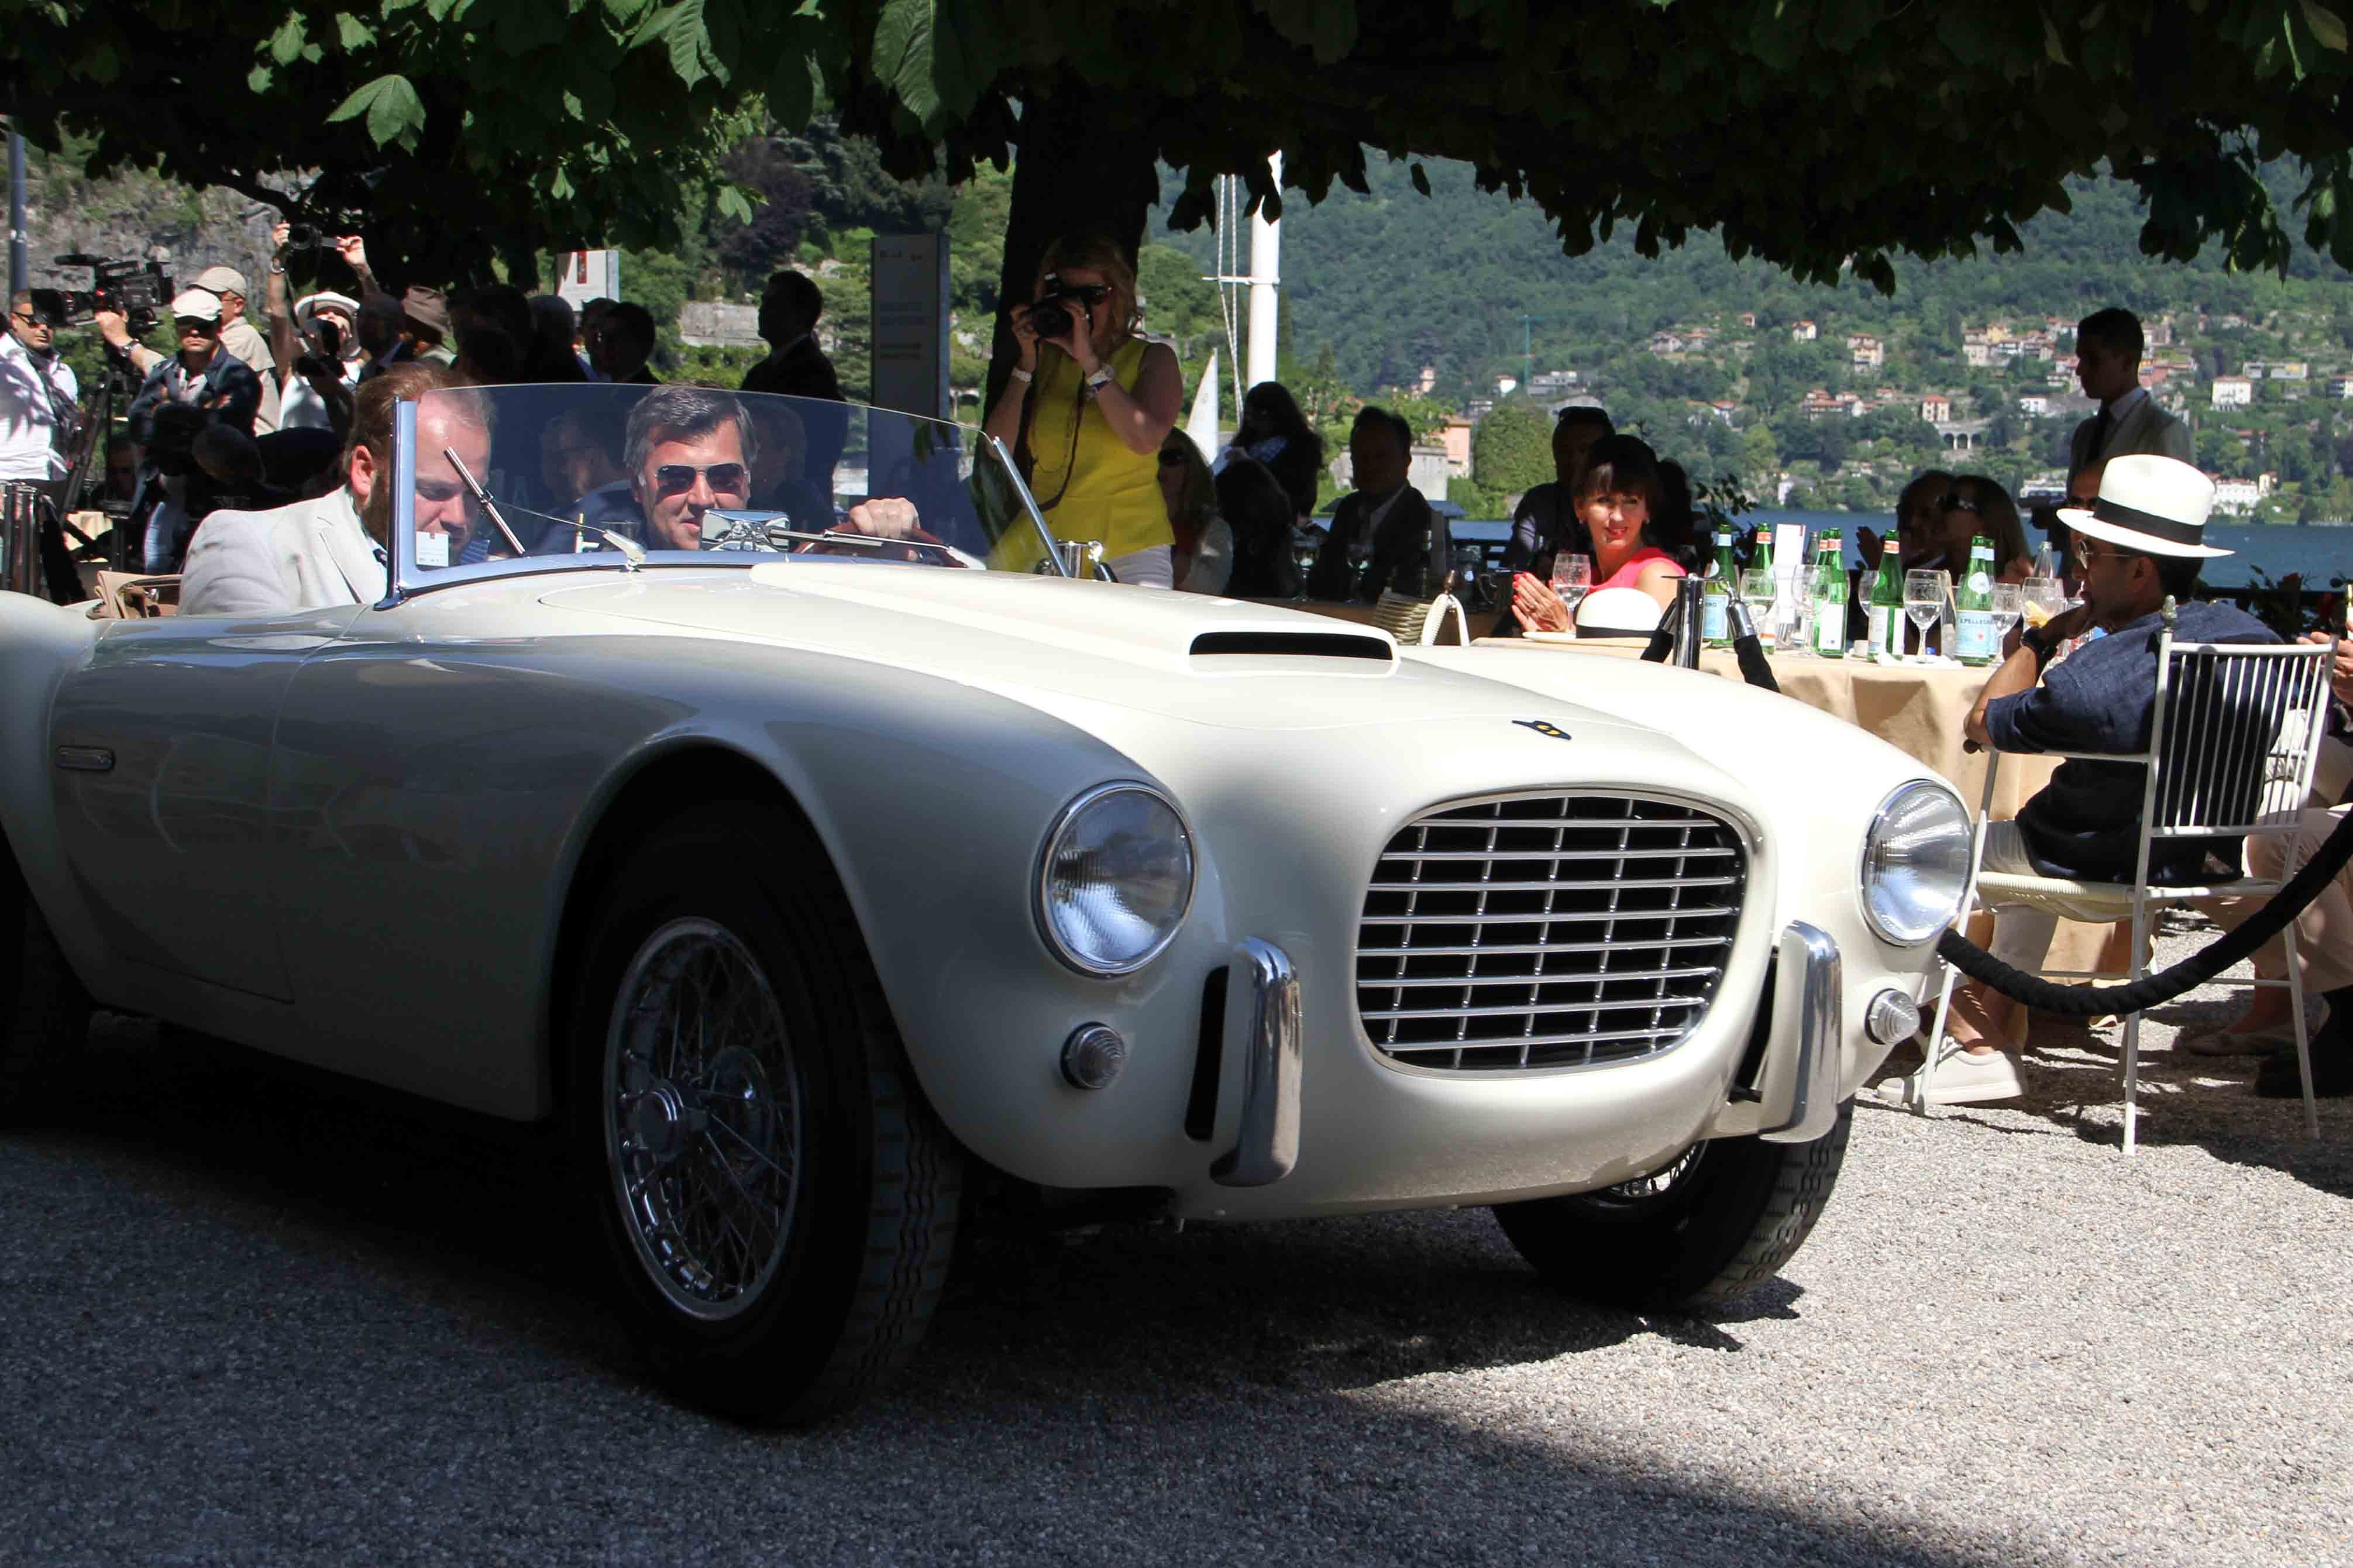 Siata 208 S, 1954. Photo Report: Watch And Car Spotting At The 2016 Concorso d'Eleganza Villa d'Este With A. Lange & Söhne Photo Report: Watch And Car Spotting At The 2016 Concorso d'Eleganza Villa d'Este With A. Lange & Söhne IMG 5501